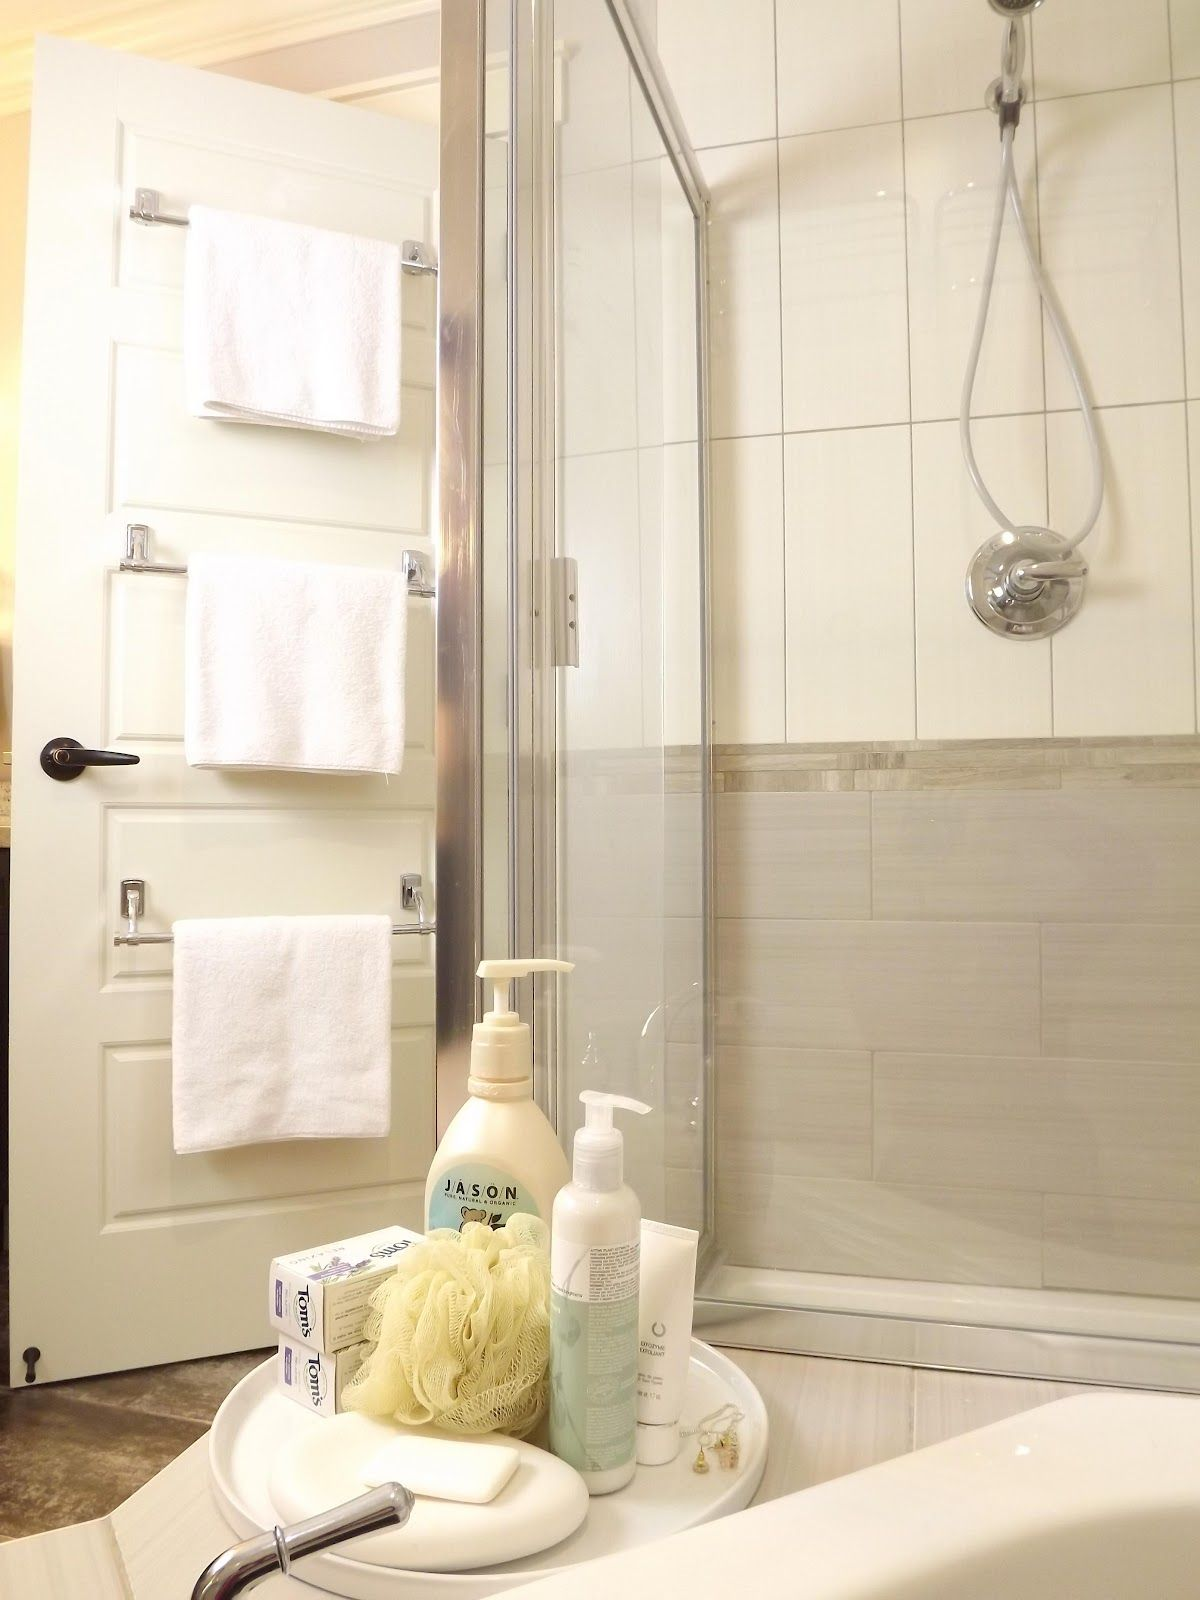 Attach Multiple Towel Bars To The Back Of The Bathroom Door For - Girls bath towels for small bathroom ideas